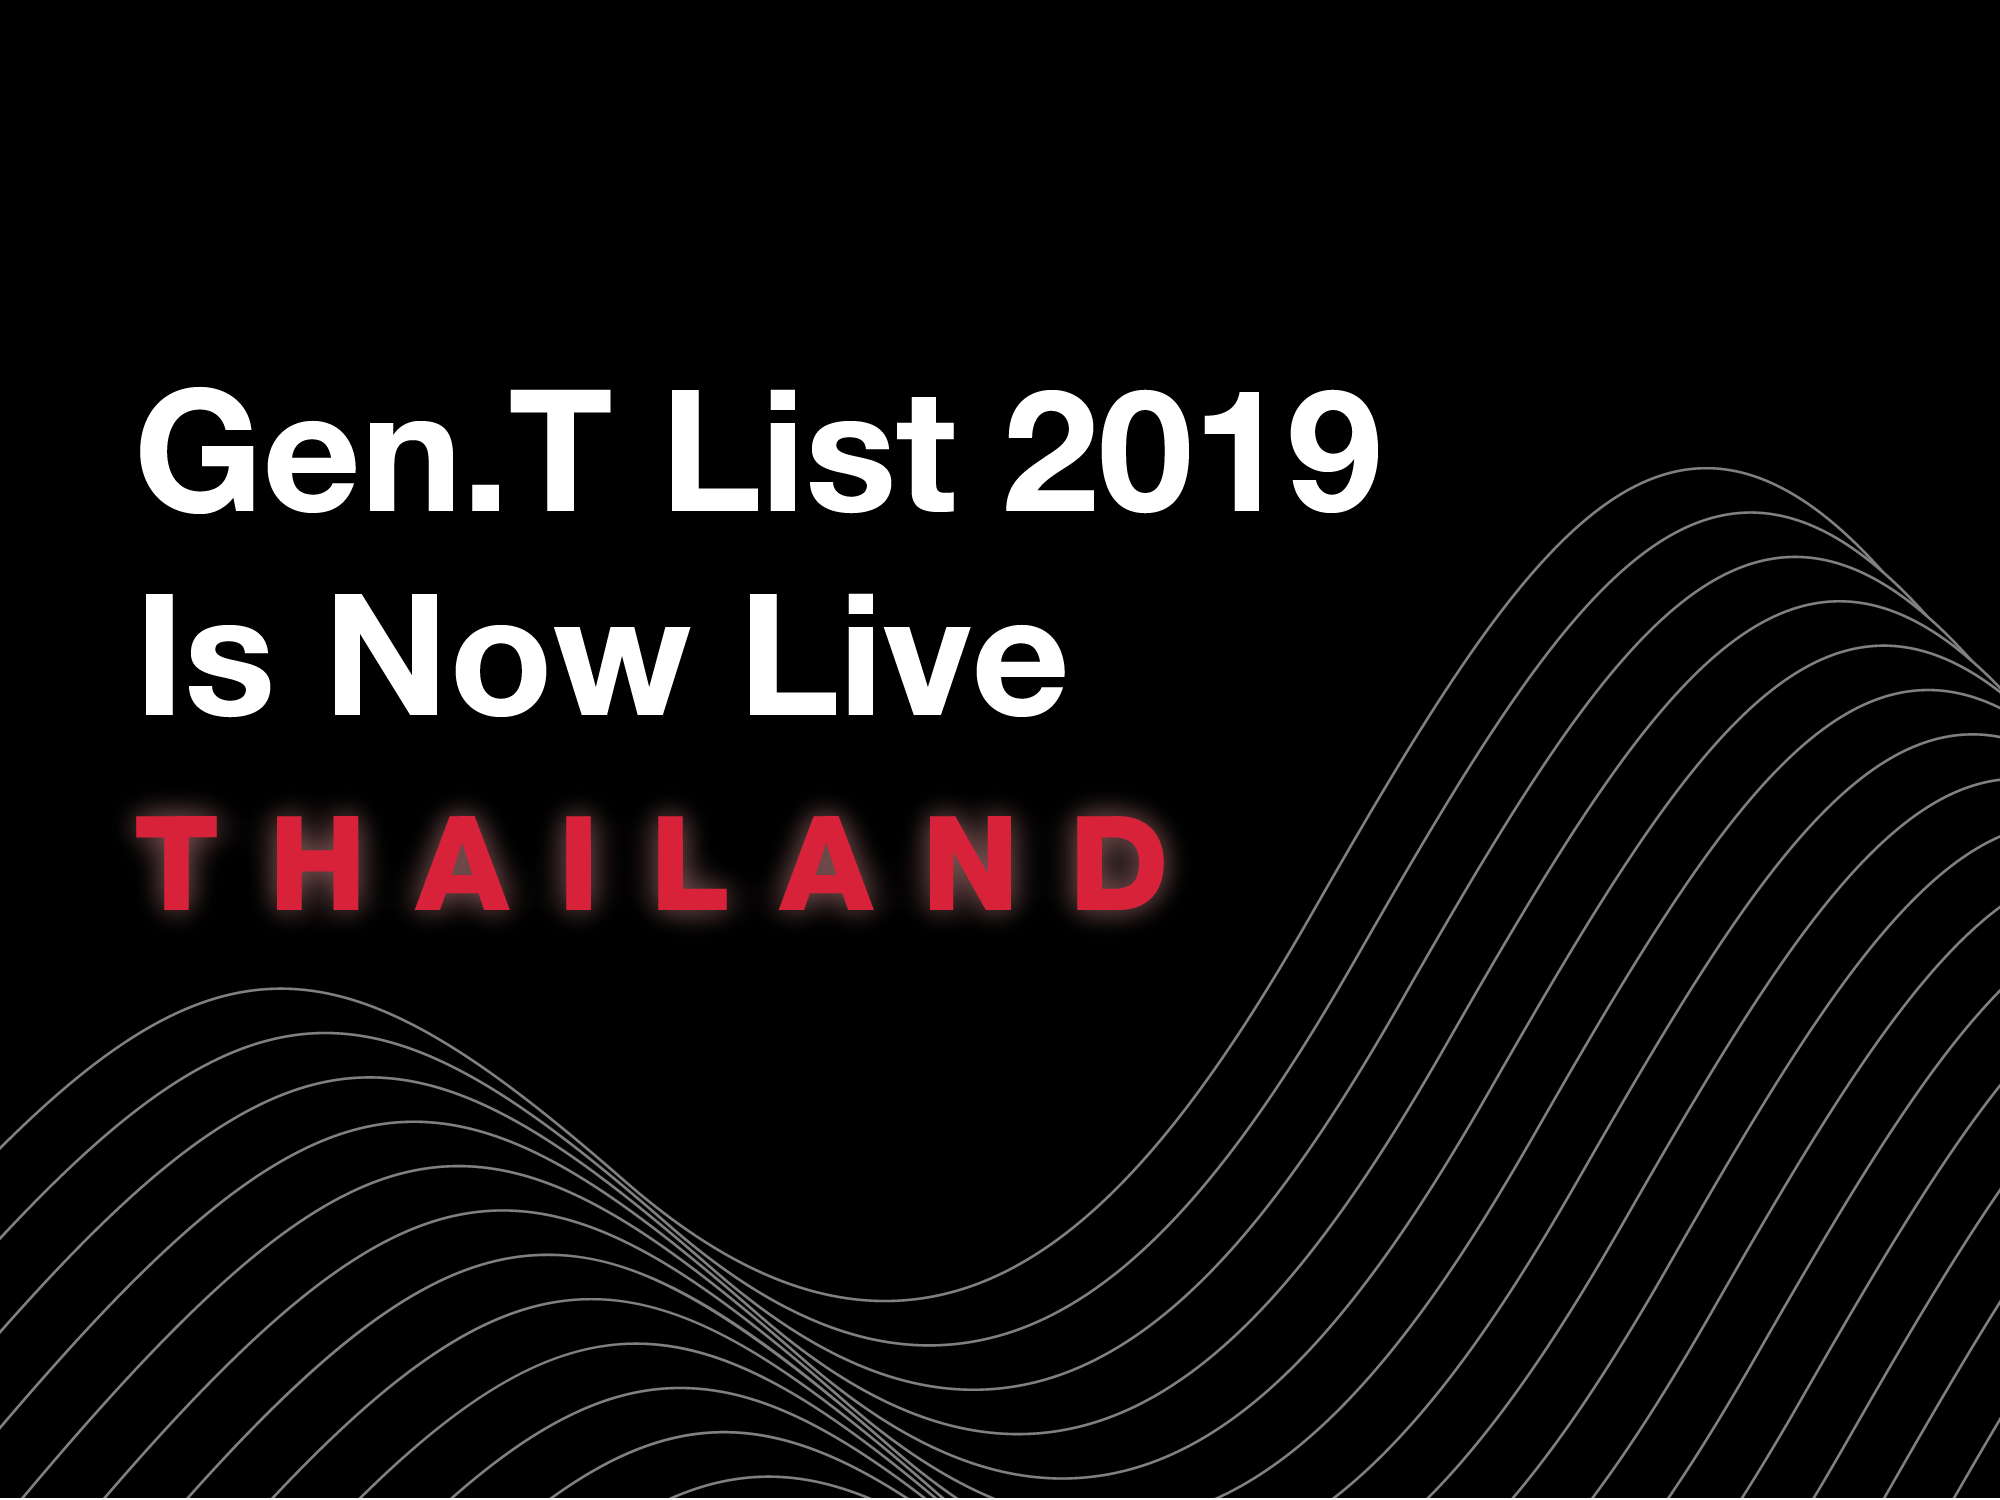 See The Thailand Honourees On The Gen.T List 2019